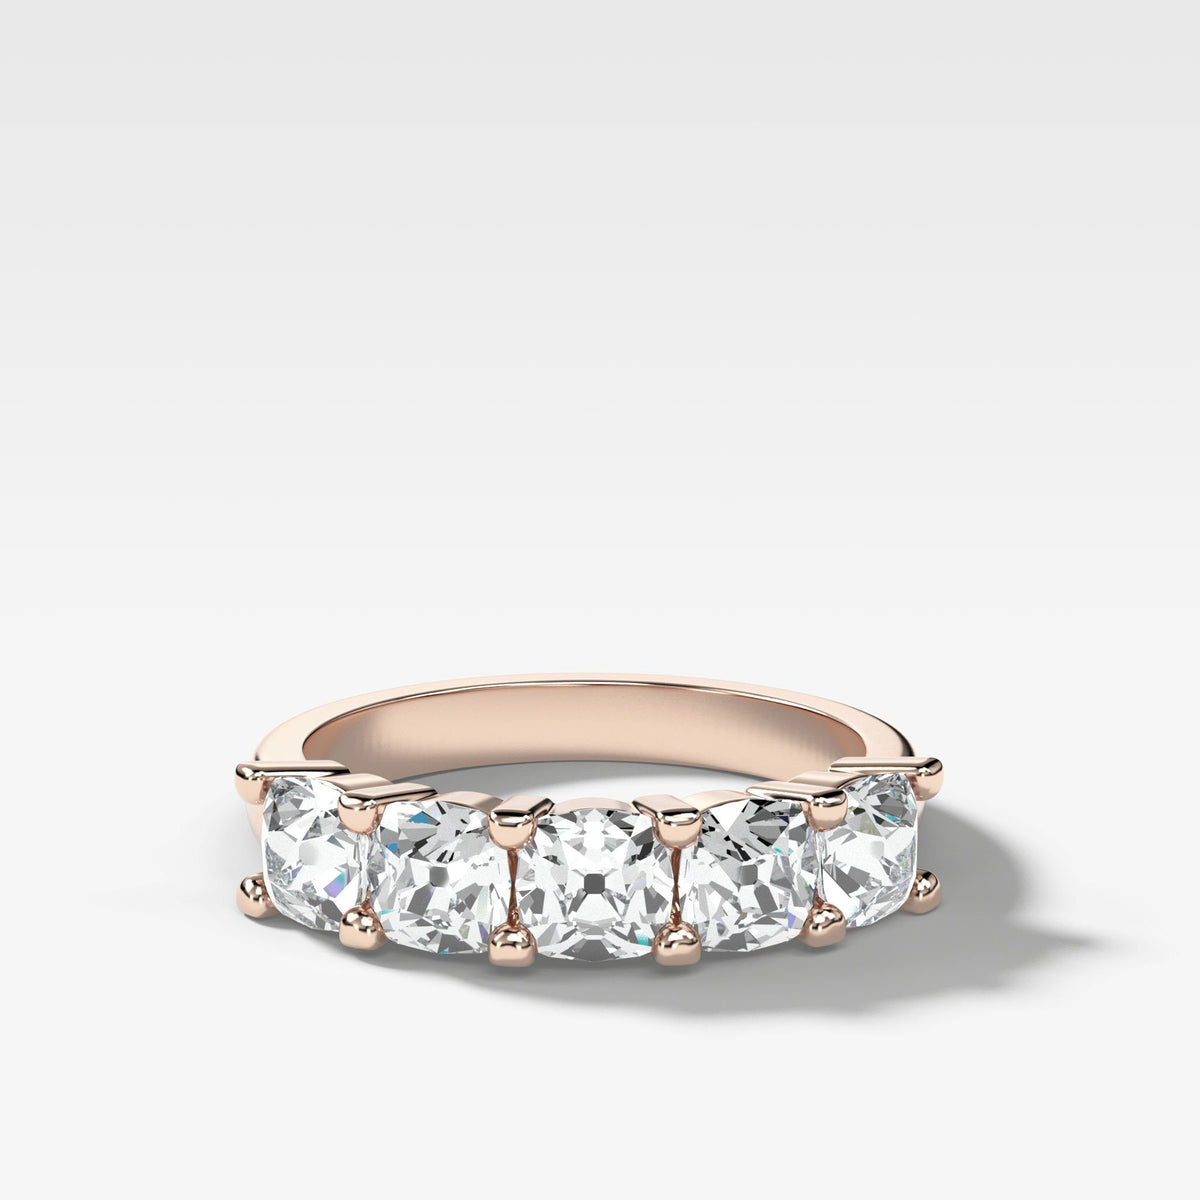 Five Stone Shared Prong Diamond Band With Old Mine Cuts (1.65ctw) In Rose Gold By Good Stone